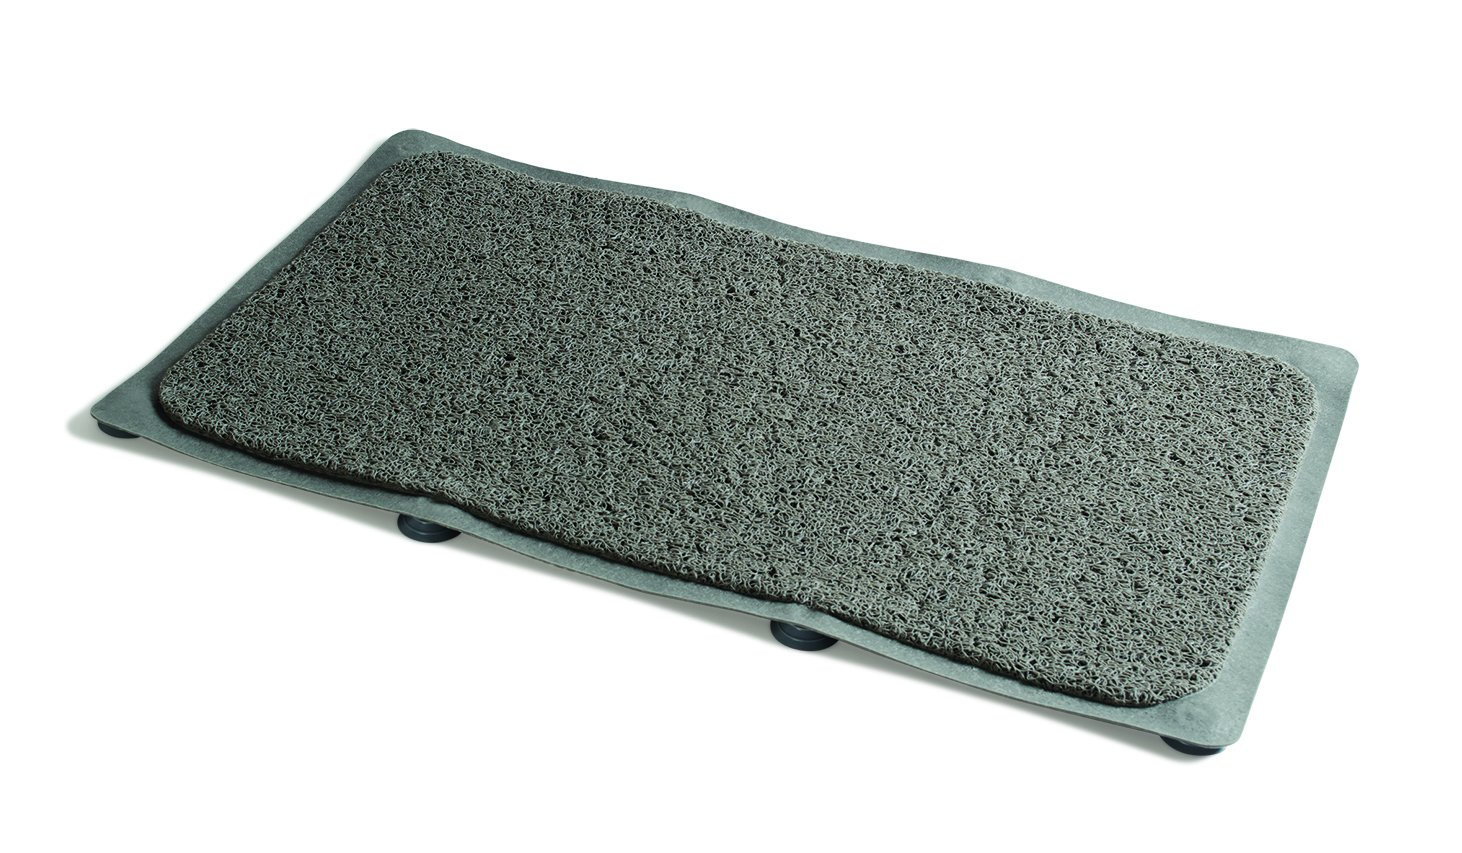 Ideaworks Hydro Rug - Non Slip Bathroom Shower & Bath Mat - 8 Suction Cups - Dries Fast & Stays Clean (Gray)